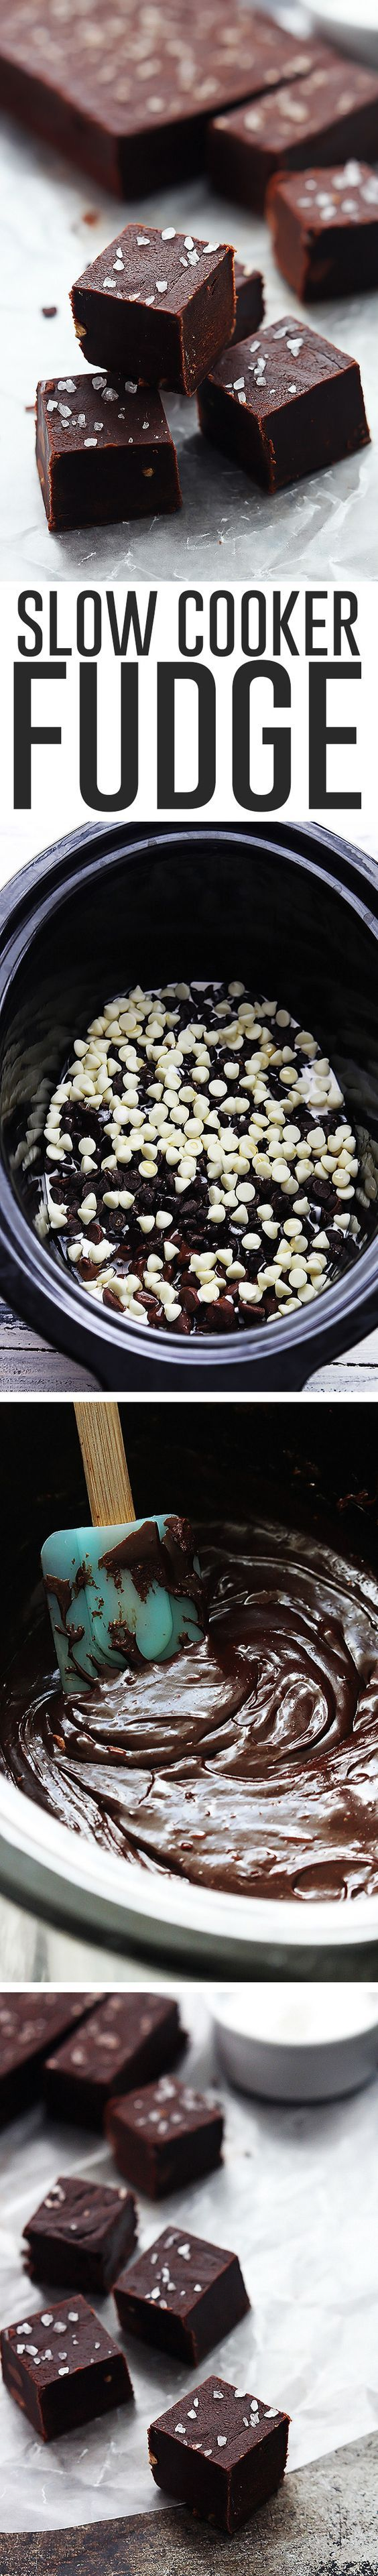 Easy crock pot candy recipes